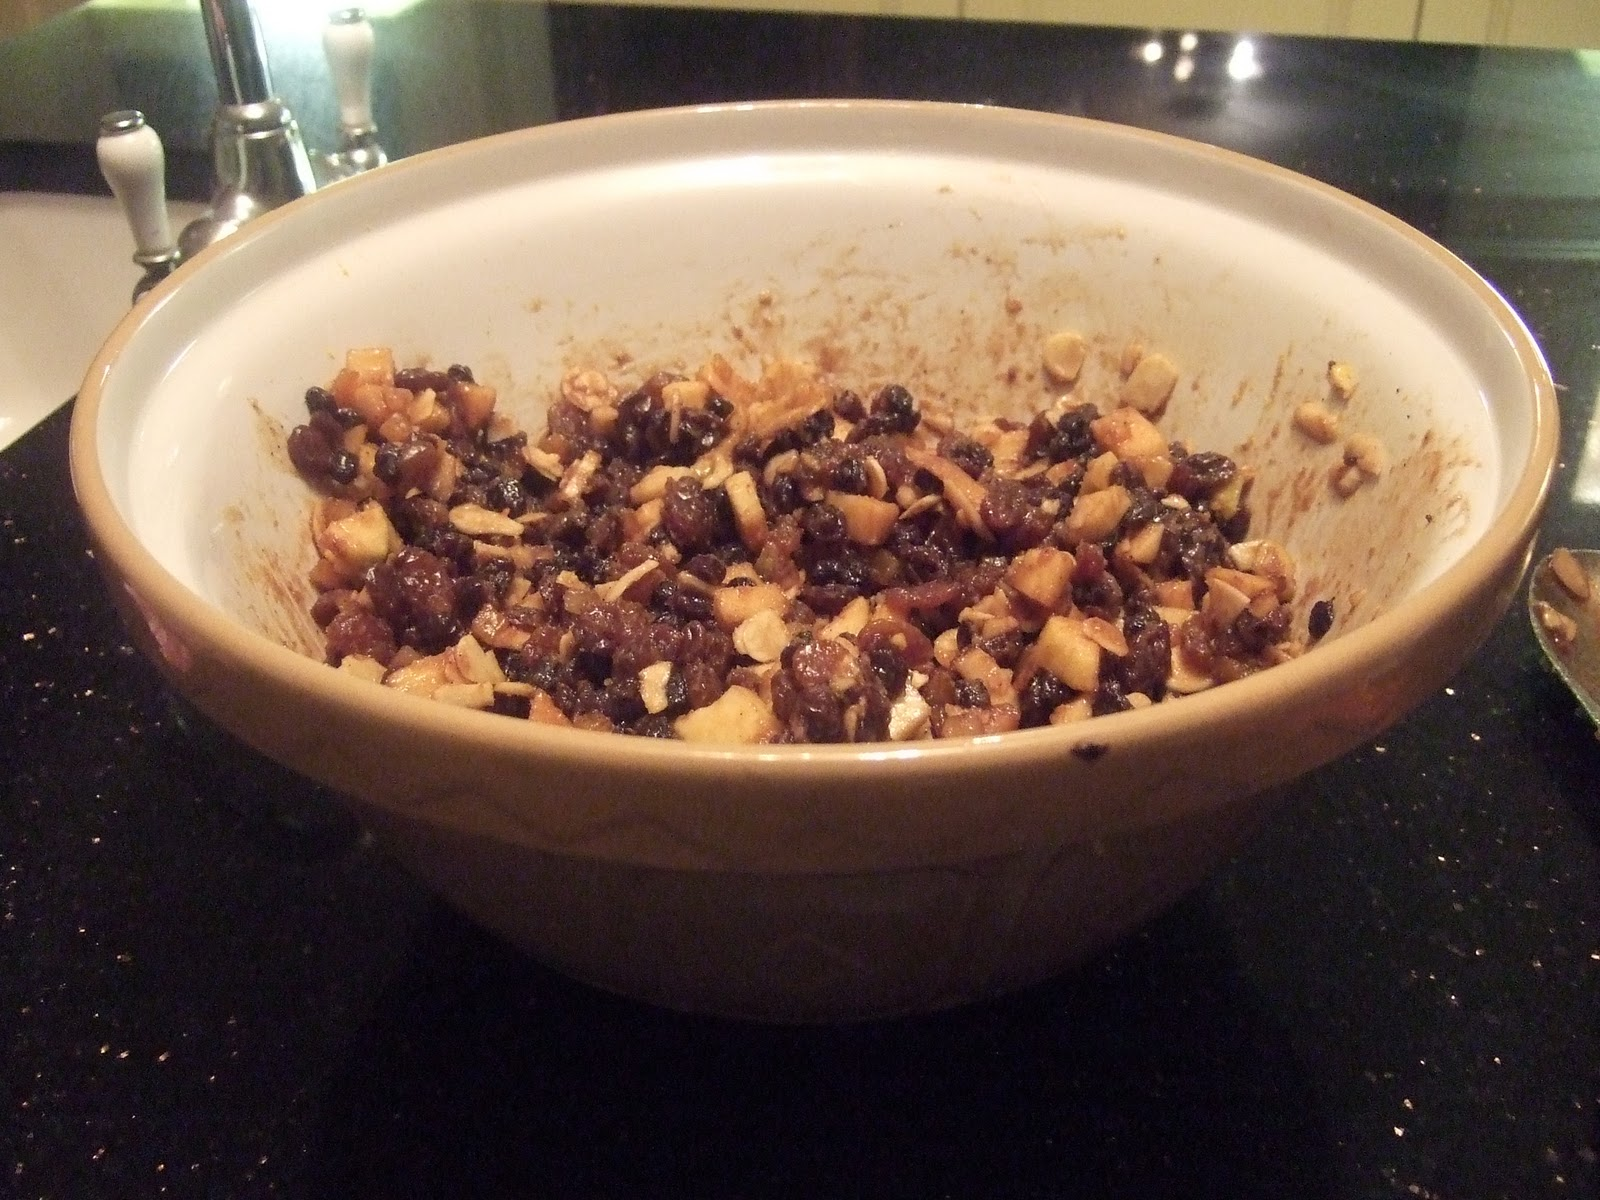 The Kitsch Cook: Vegetarian Christmas Mincemeat